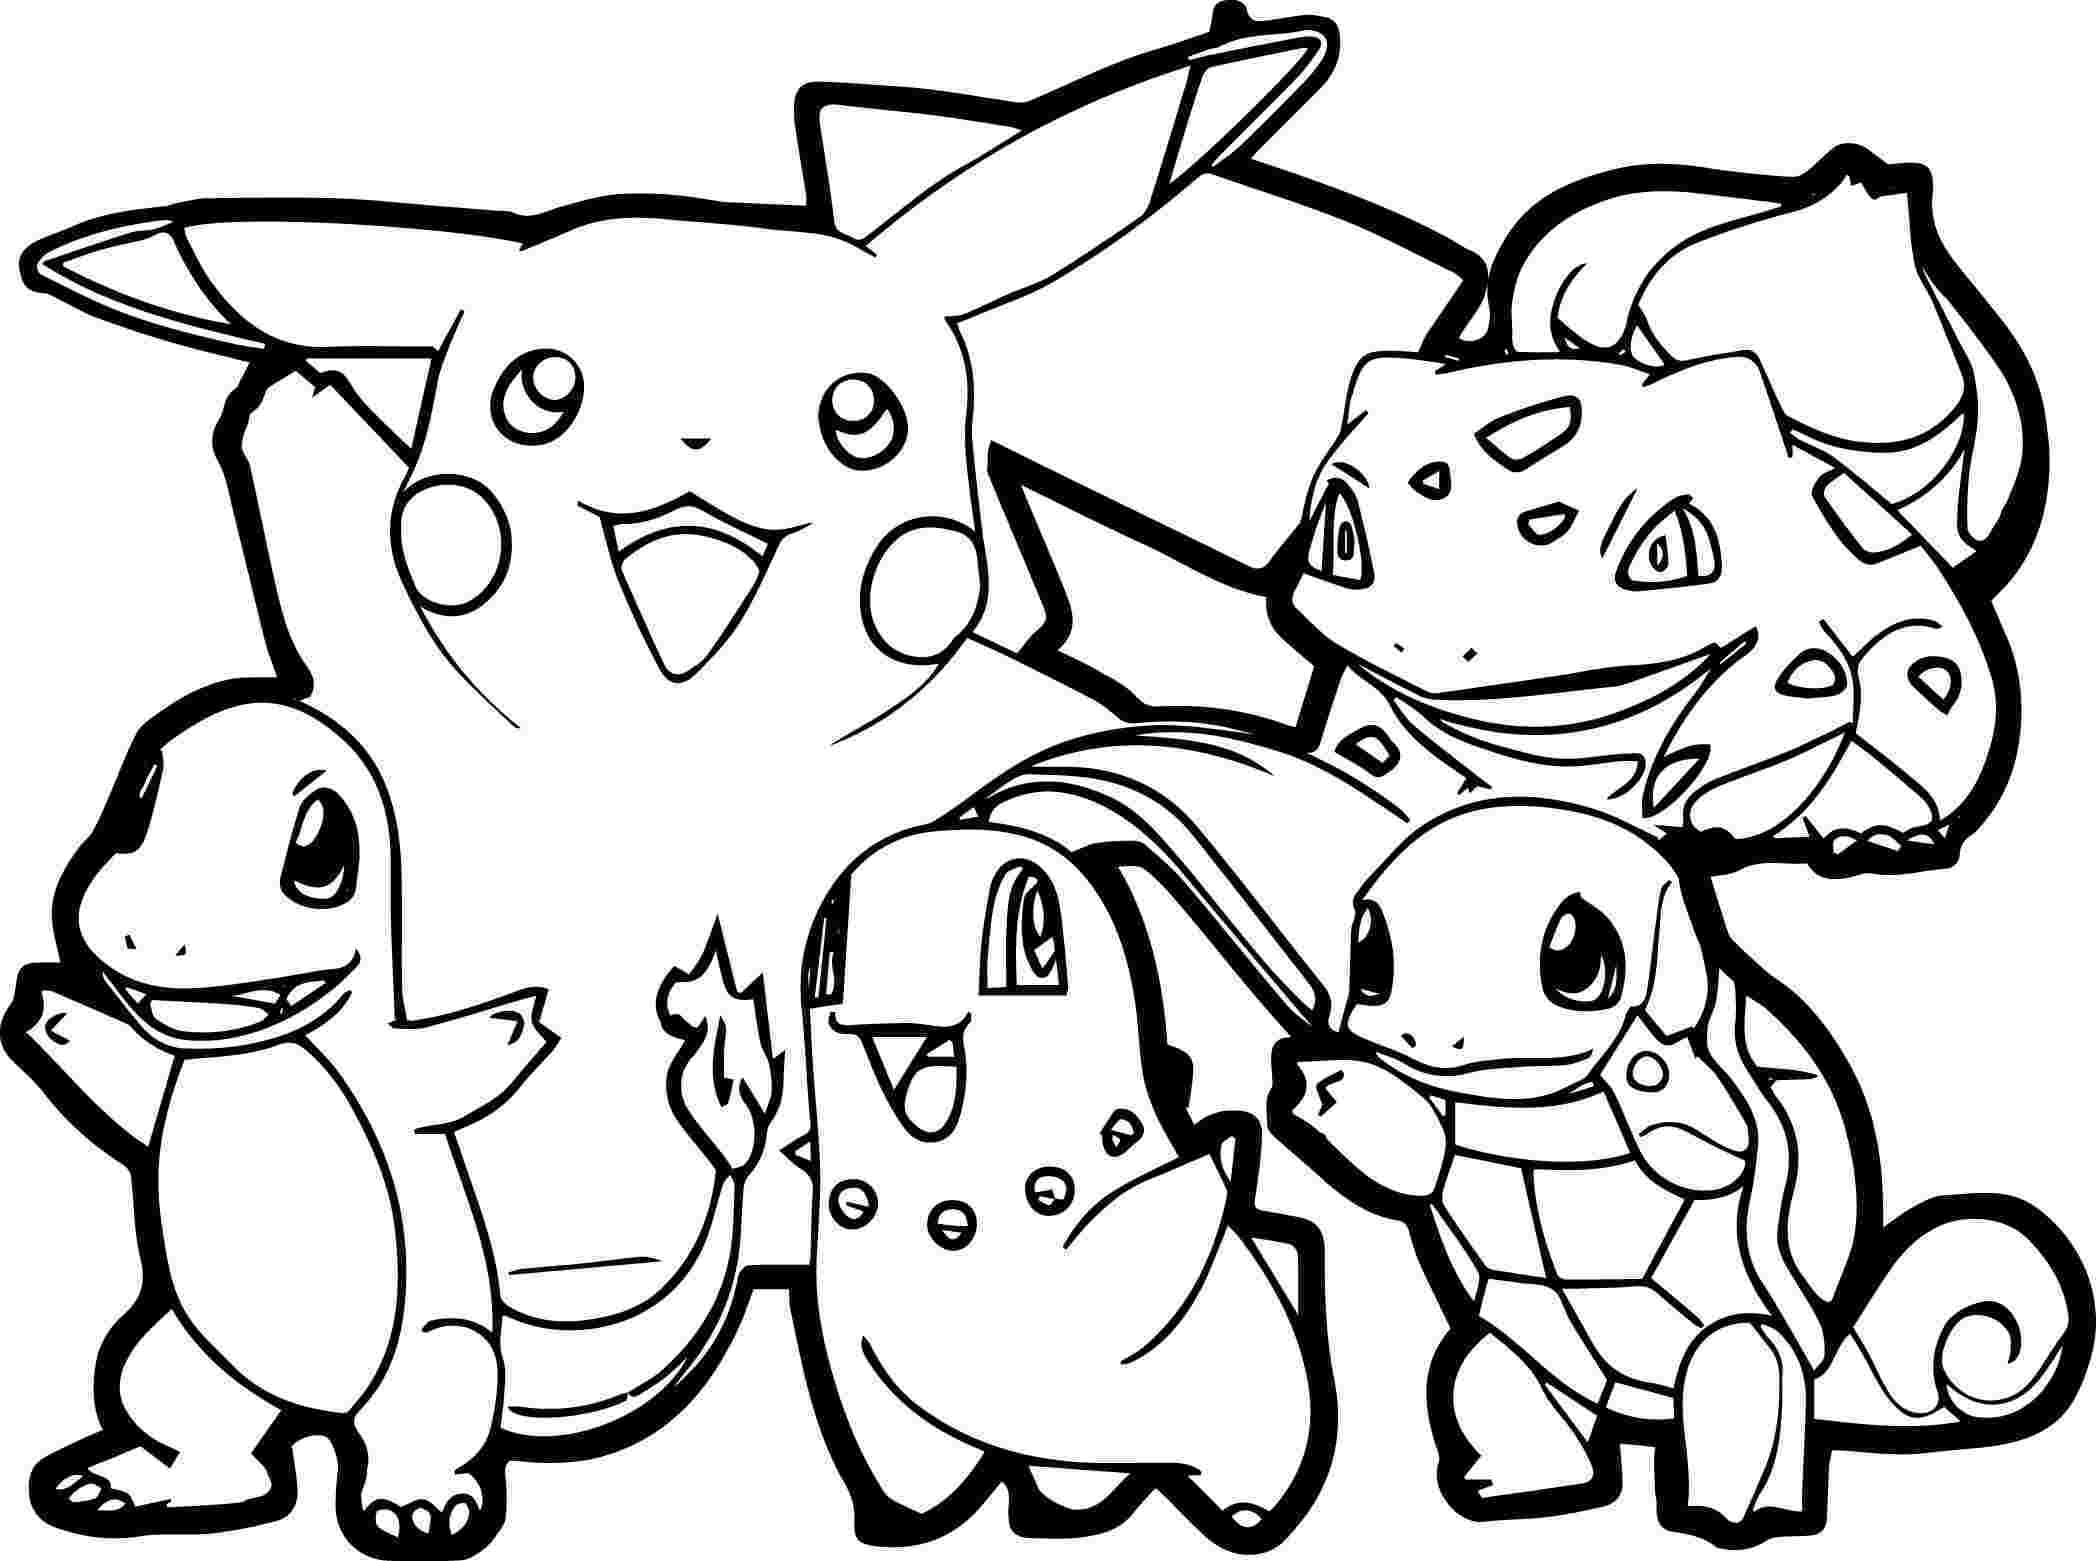 pokemon printable coloring sheets pokemon coloring pages join your favorite pokemon on an printable pokemon sheets coloring